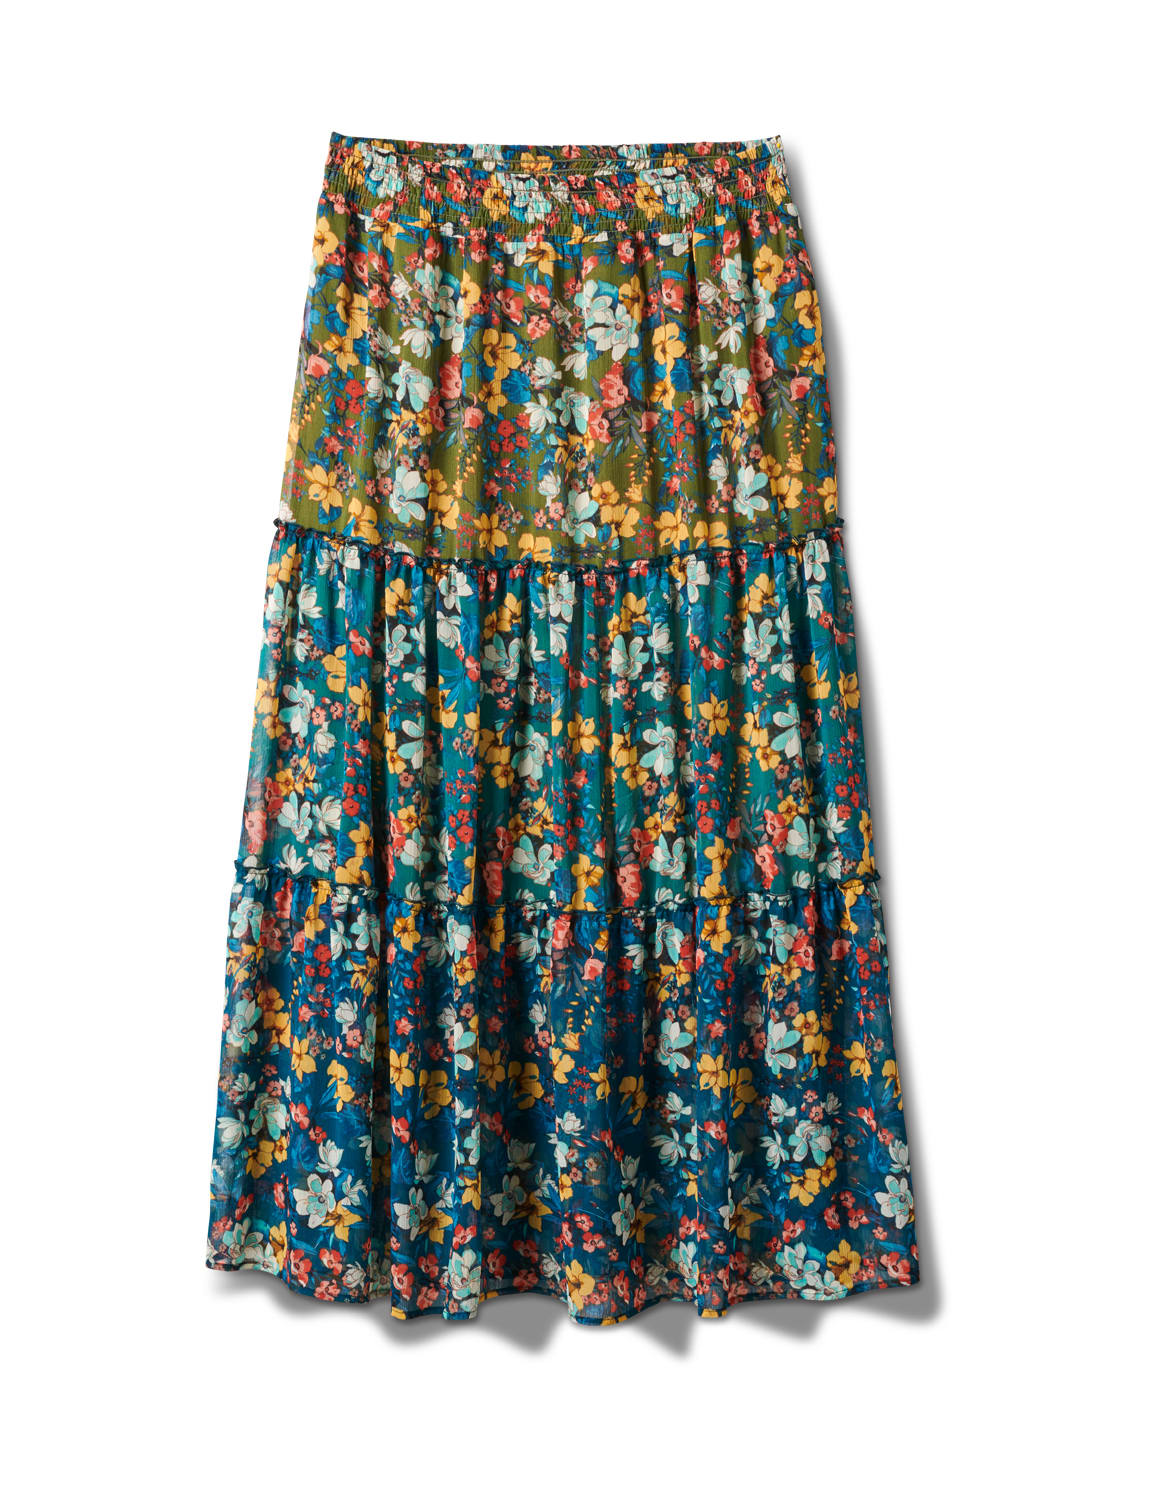 Plus 3 Tiered Maxi Skirt - Moroccan Blue - Front